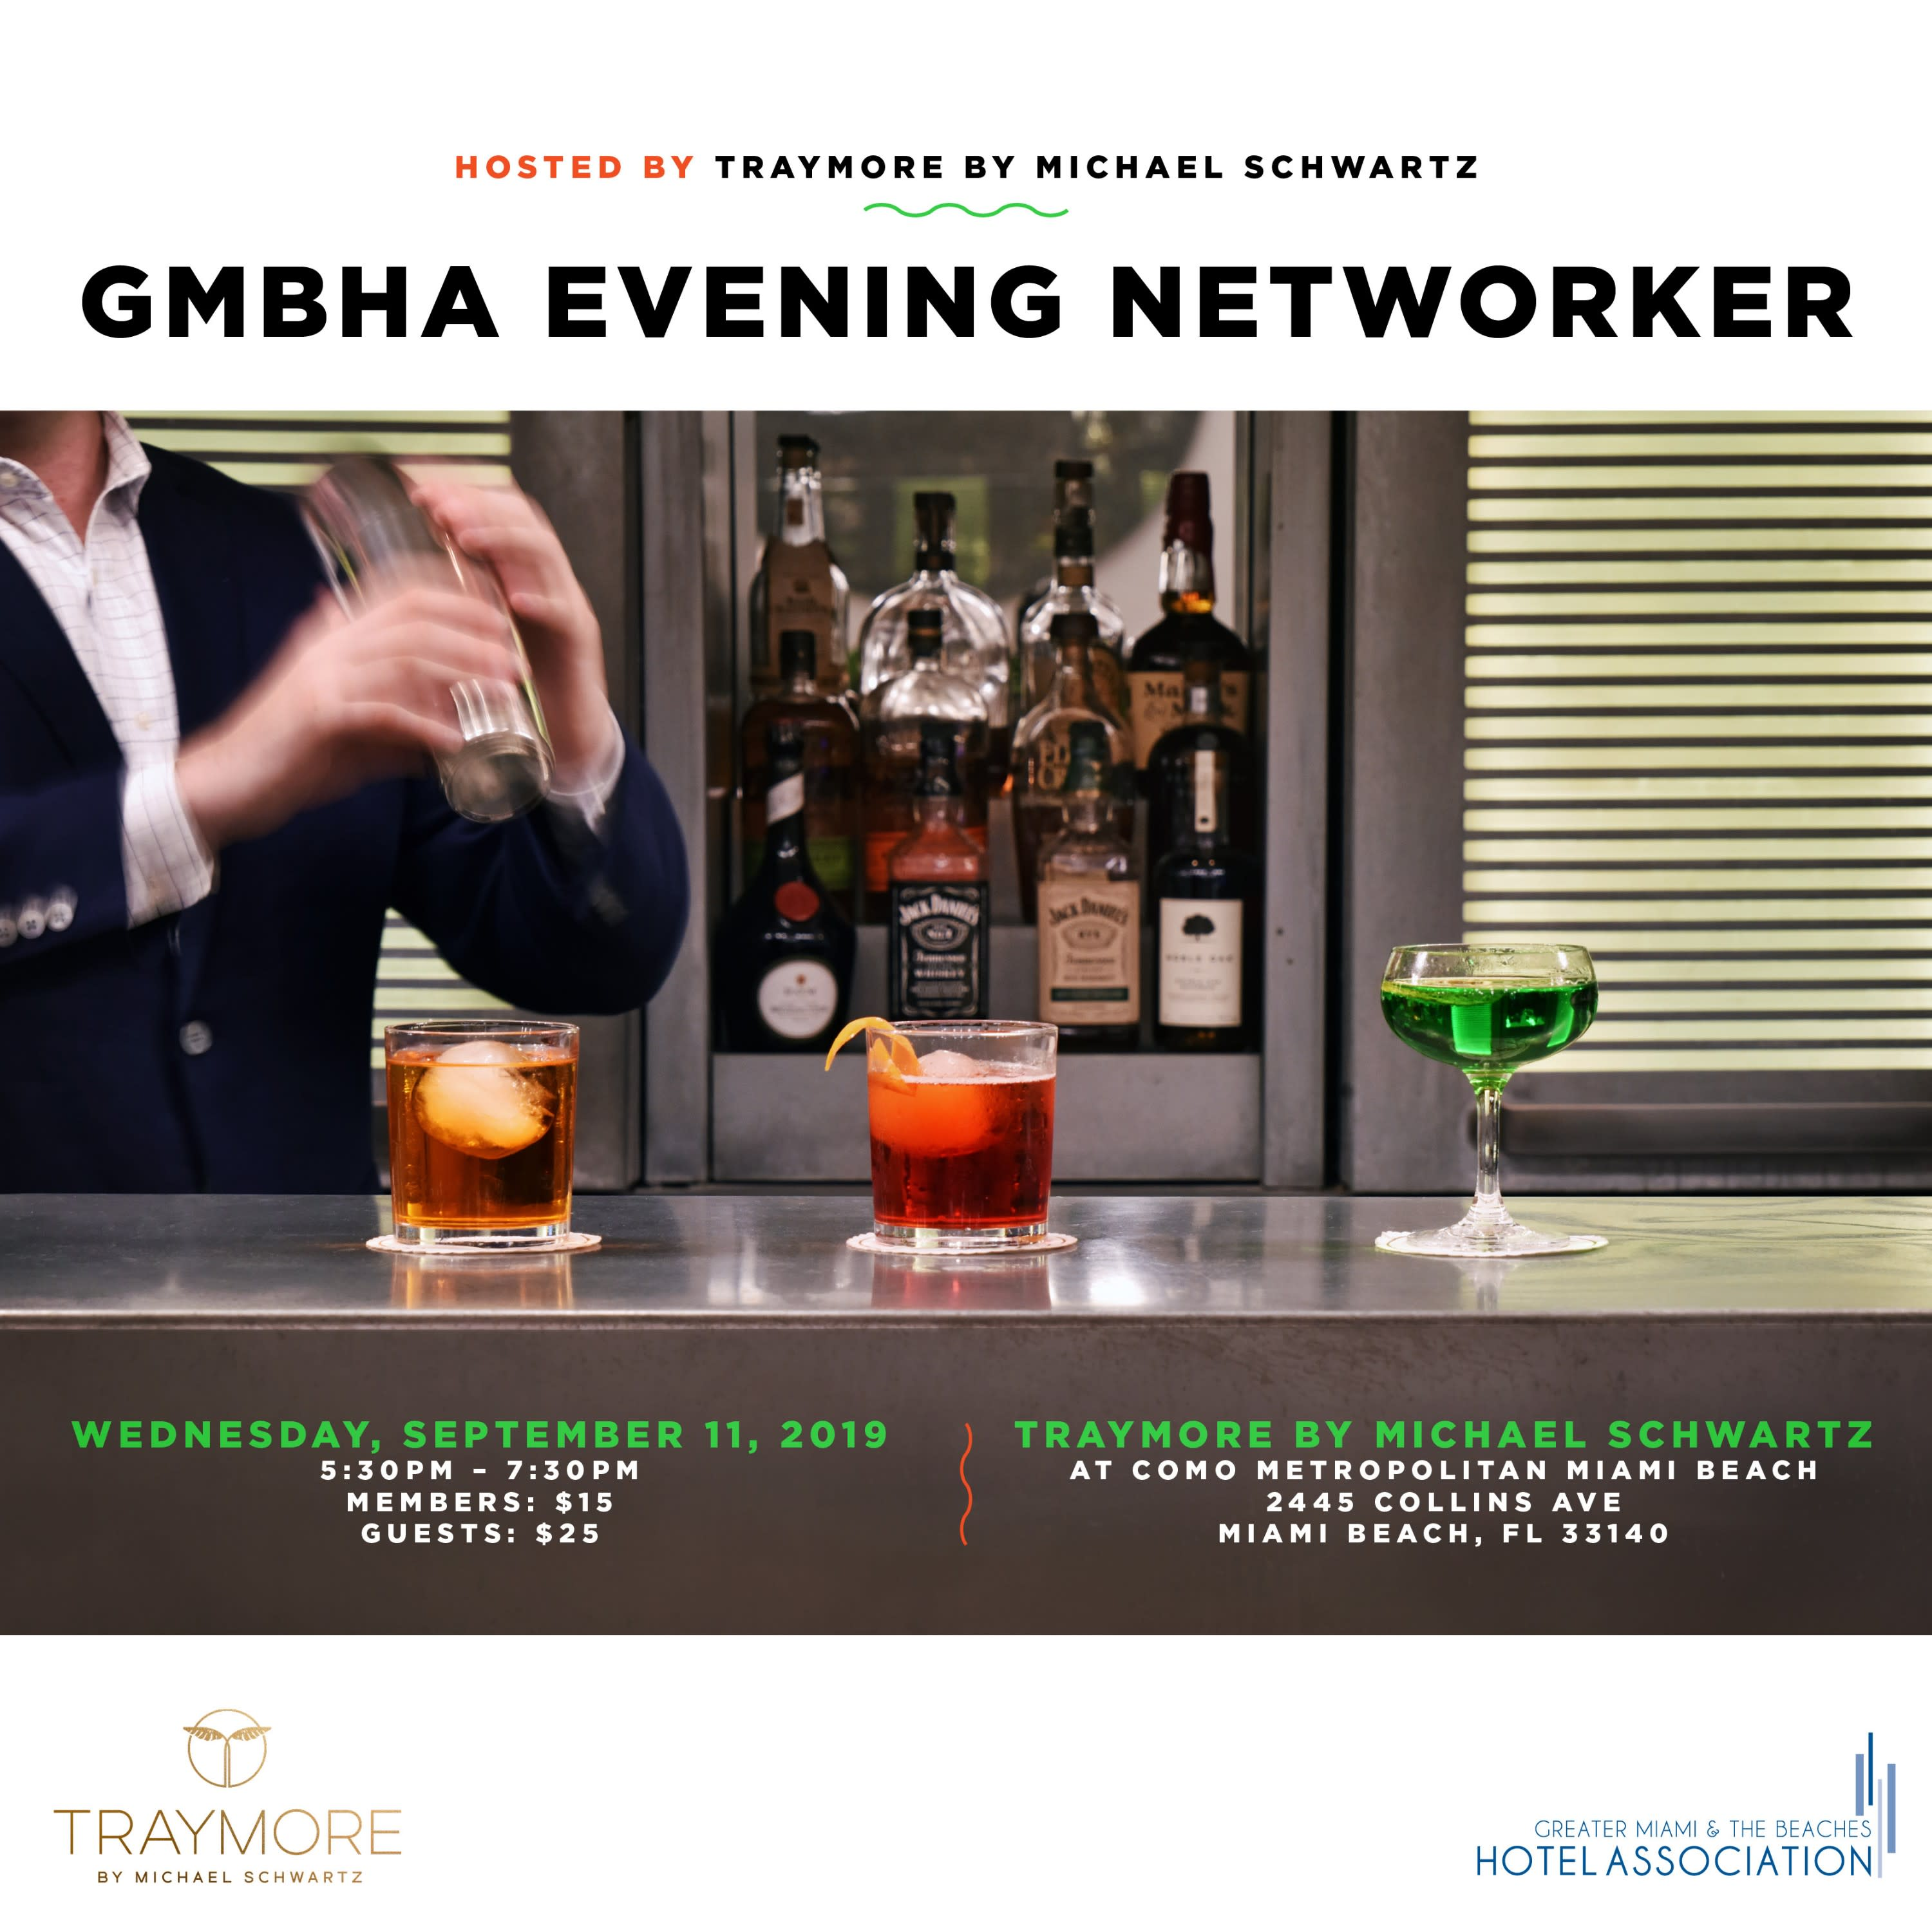 GMBHA Evening Networker at Traymore by Michael Schwartz